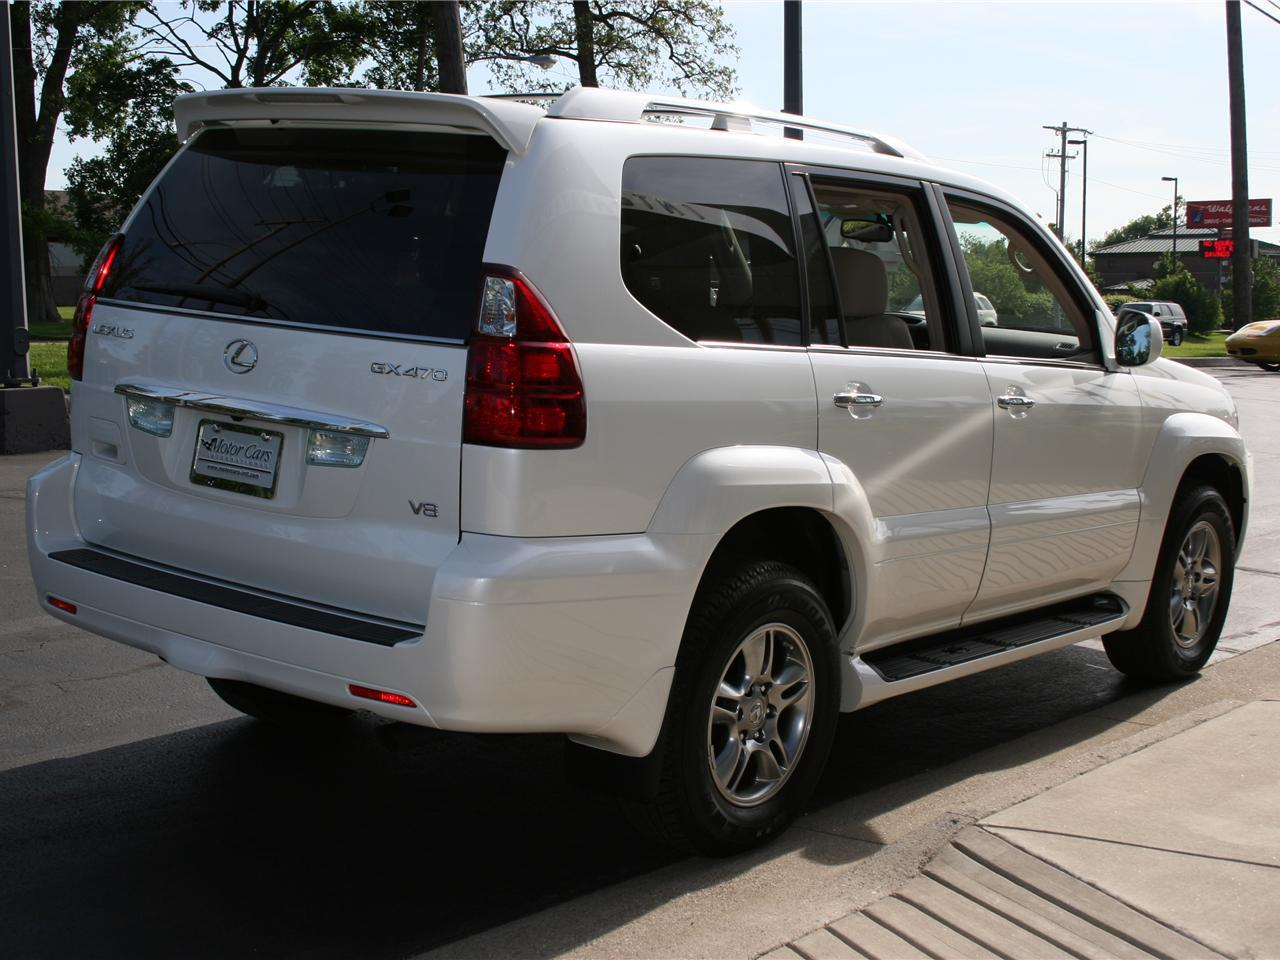 2008 Lexus Gx 470 Information And Photos Zombiedrive